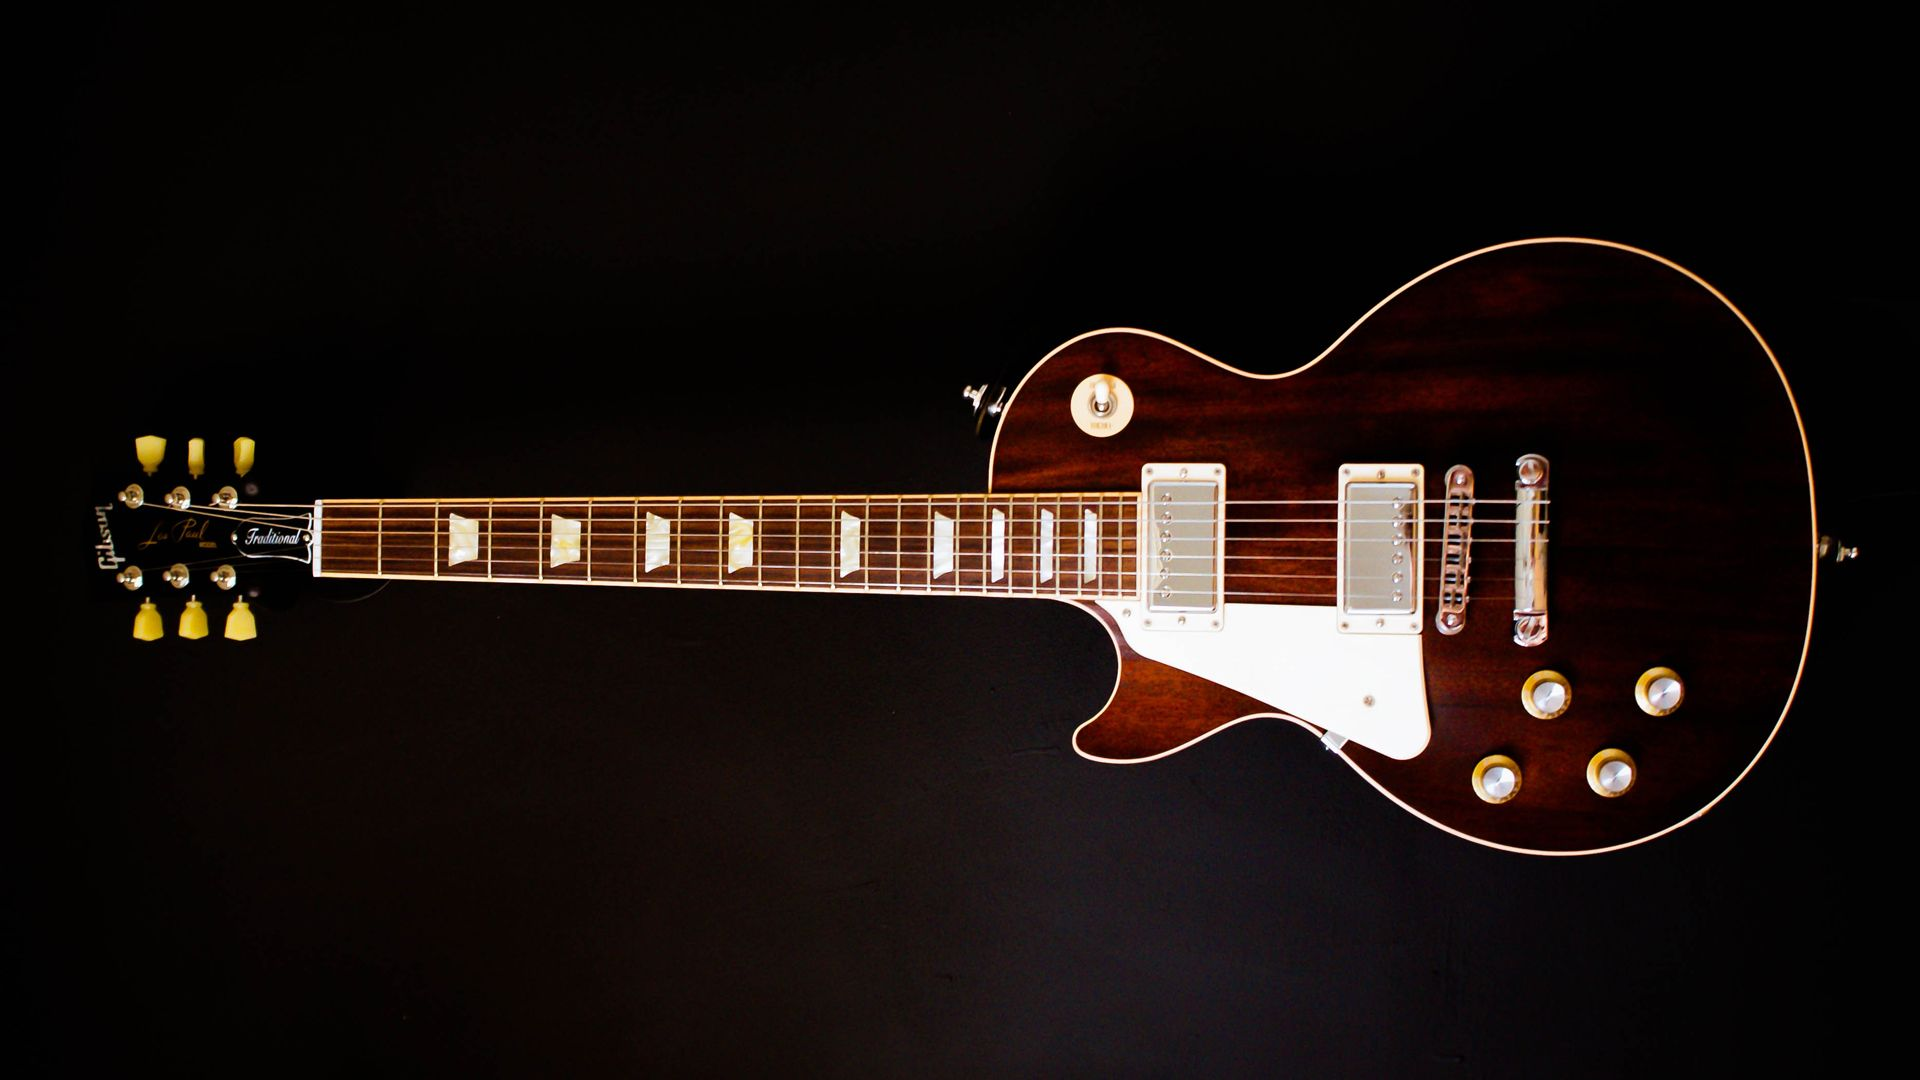 Gibson Les Paul Traditional 2012 Worn Brown 1080x1920